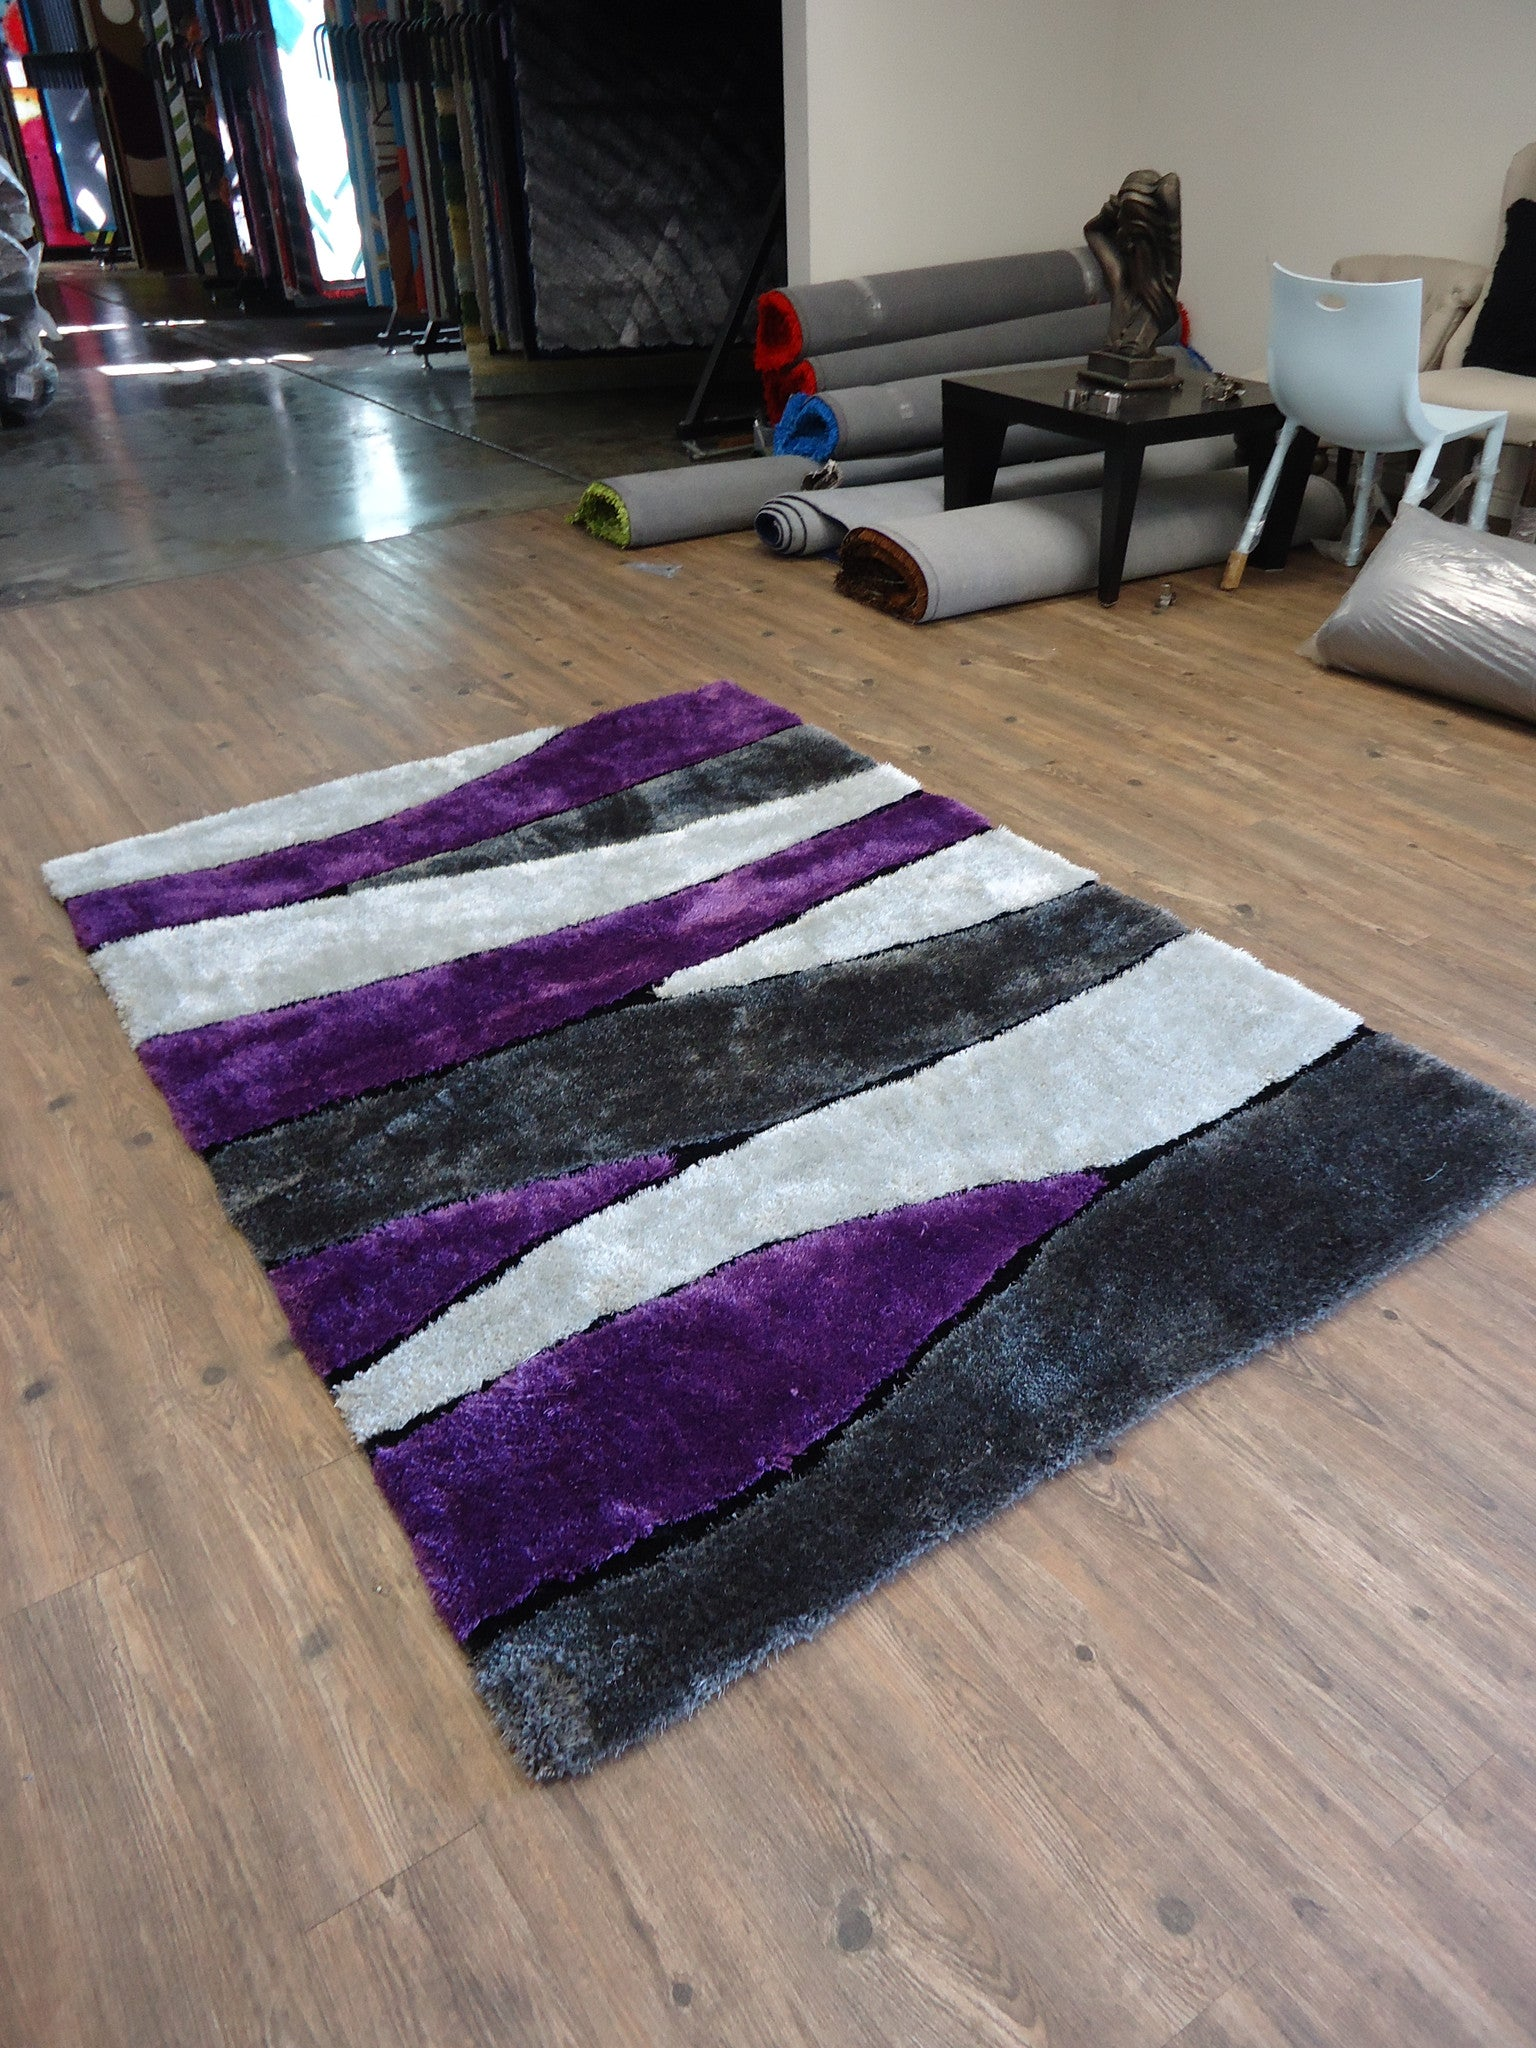 2piece set handmade vibrant gray with purple shag area rug with hand carved